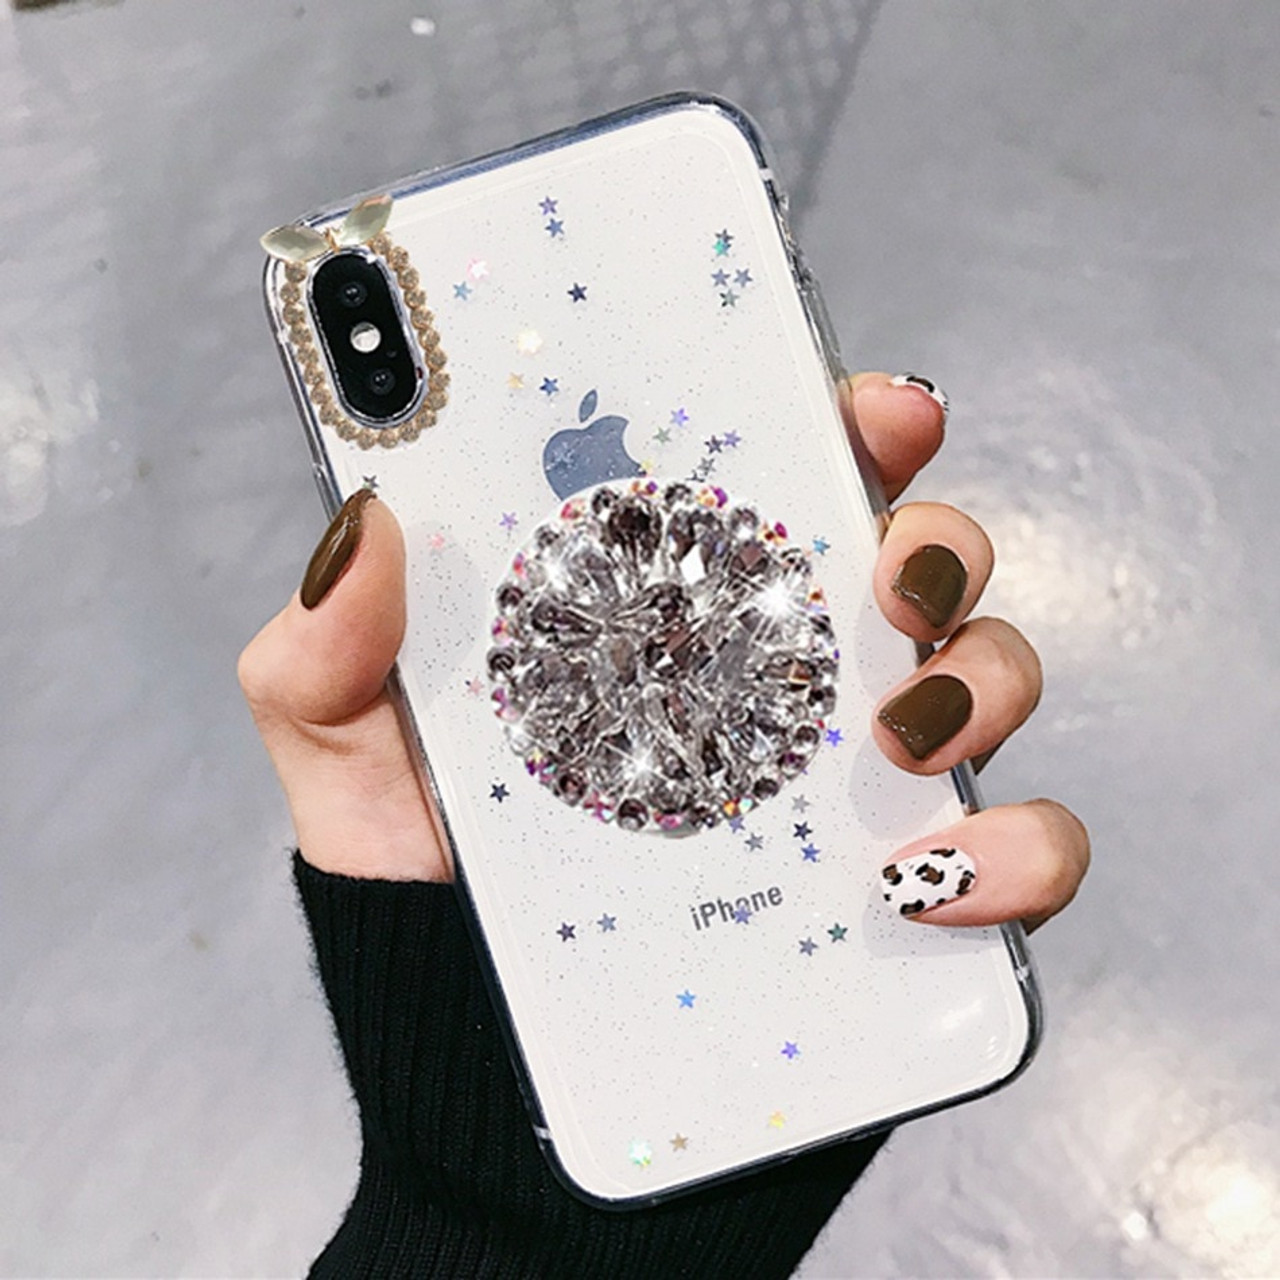 277205430d For iPhone 7 8 Case Luxury Glitter Diamond Cover For iPhone X XS Max XR 6 7  8 Plus Rhinestone 3D Grip Stand Holder Phone Cases